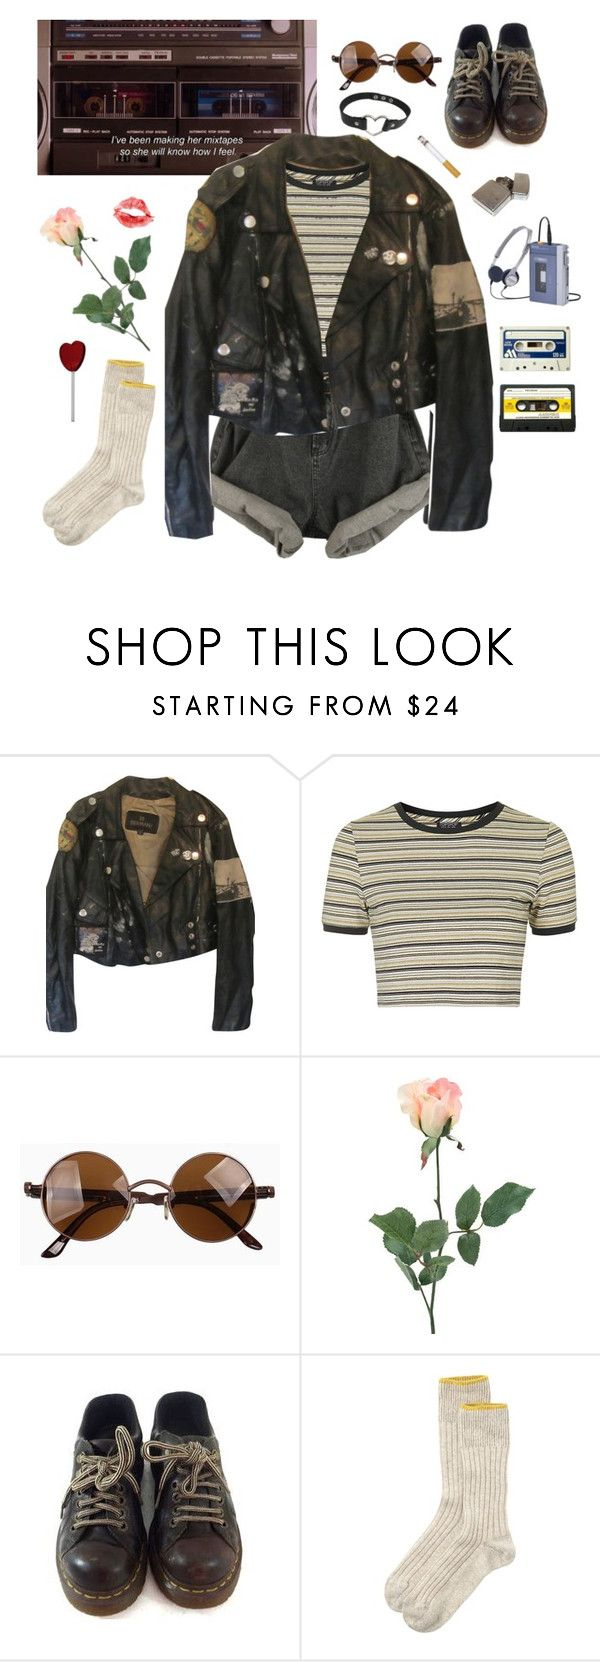 """""""here babe, take my jacket"""" by fairlyizzy ❤ liked on Polyvore featuring Topshop, Prada, INC International Concepts, Dr. Martens, Toast, women's clothing, women, female, woman and misses"""